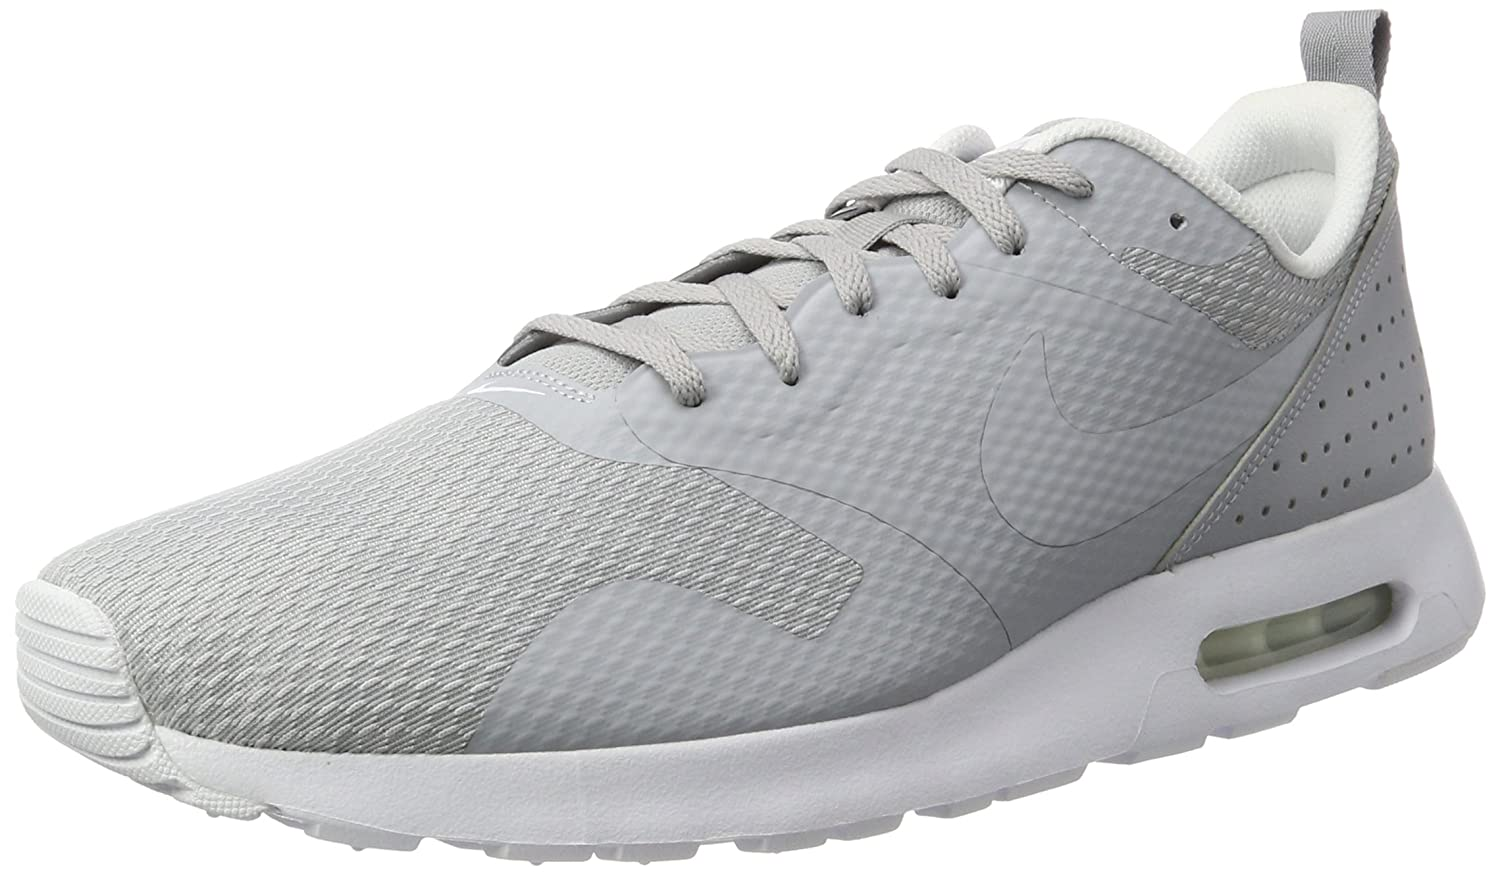 low priced 0f553 aacc7 Nike Men s Air Max Tavas Trainers